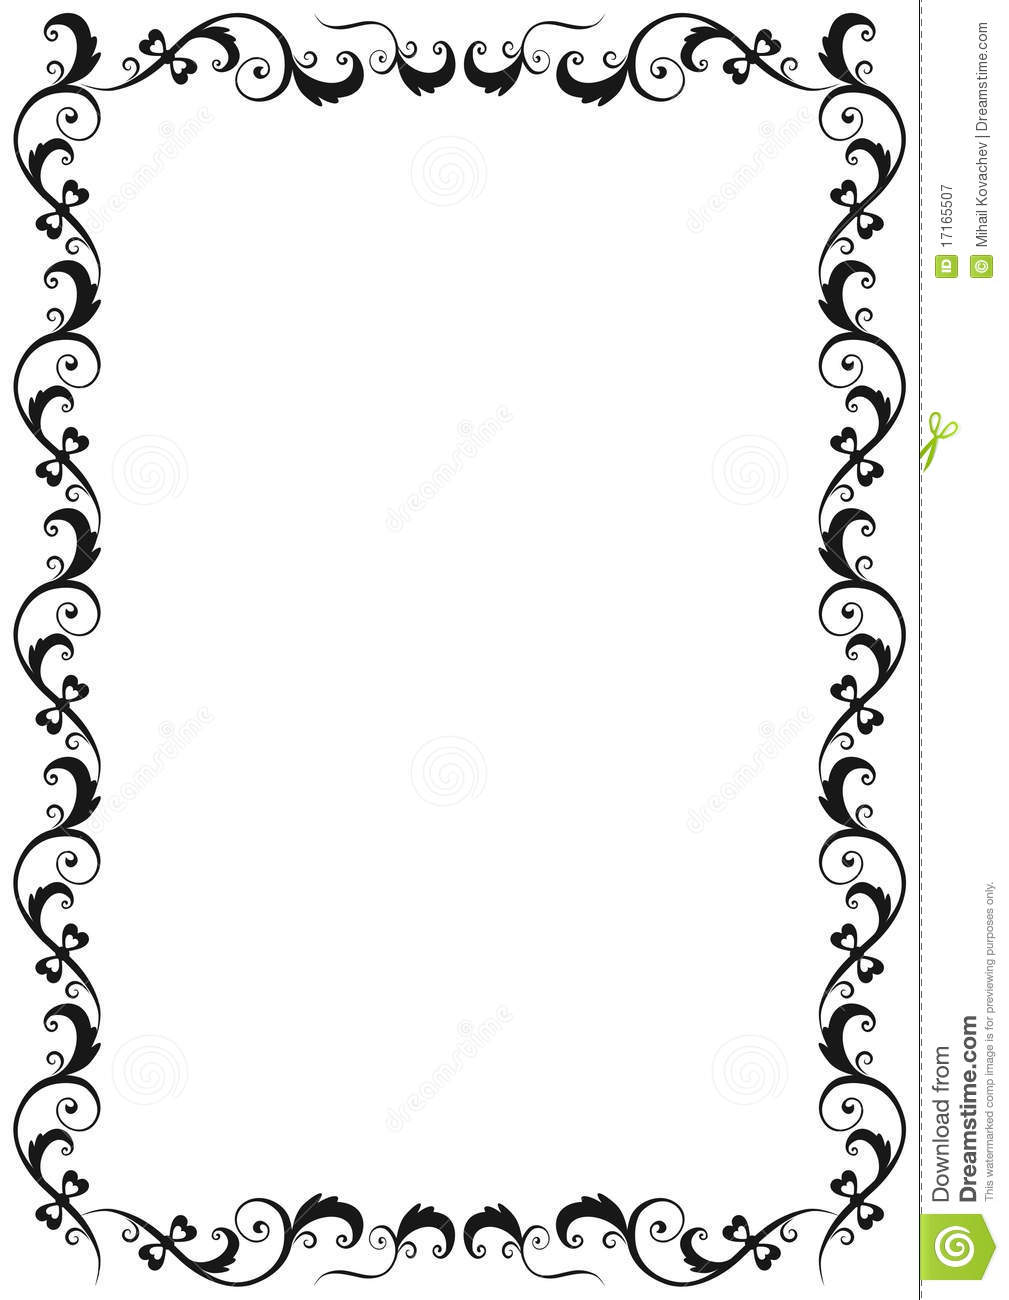 Floral Frame Royalty Free Stock Photography - Image: 17165507